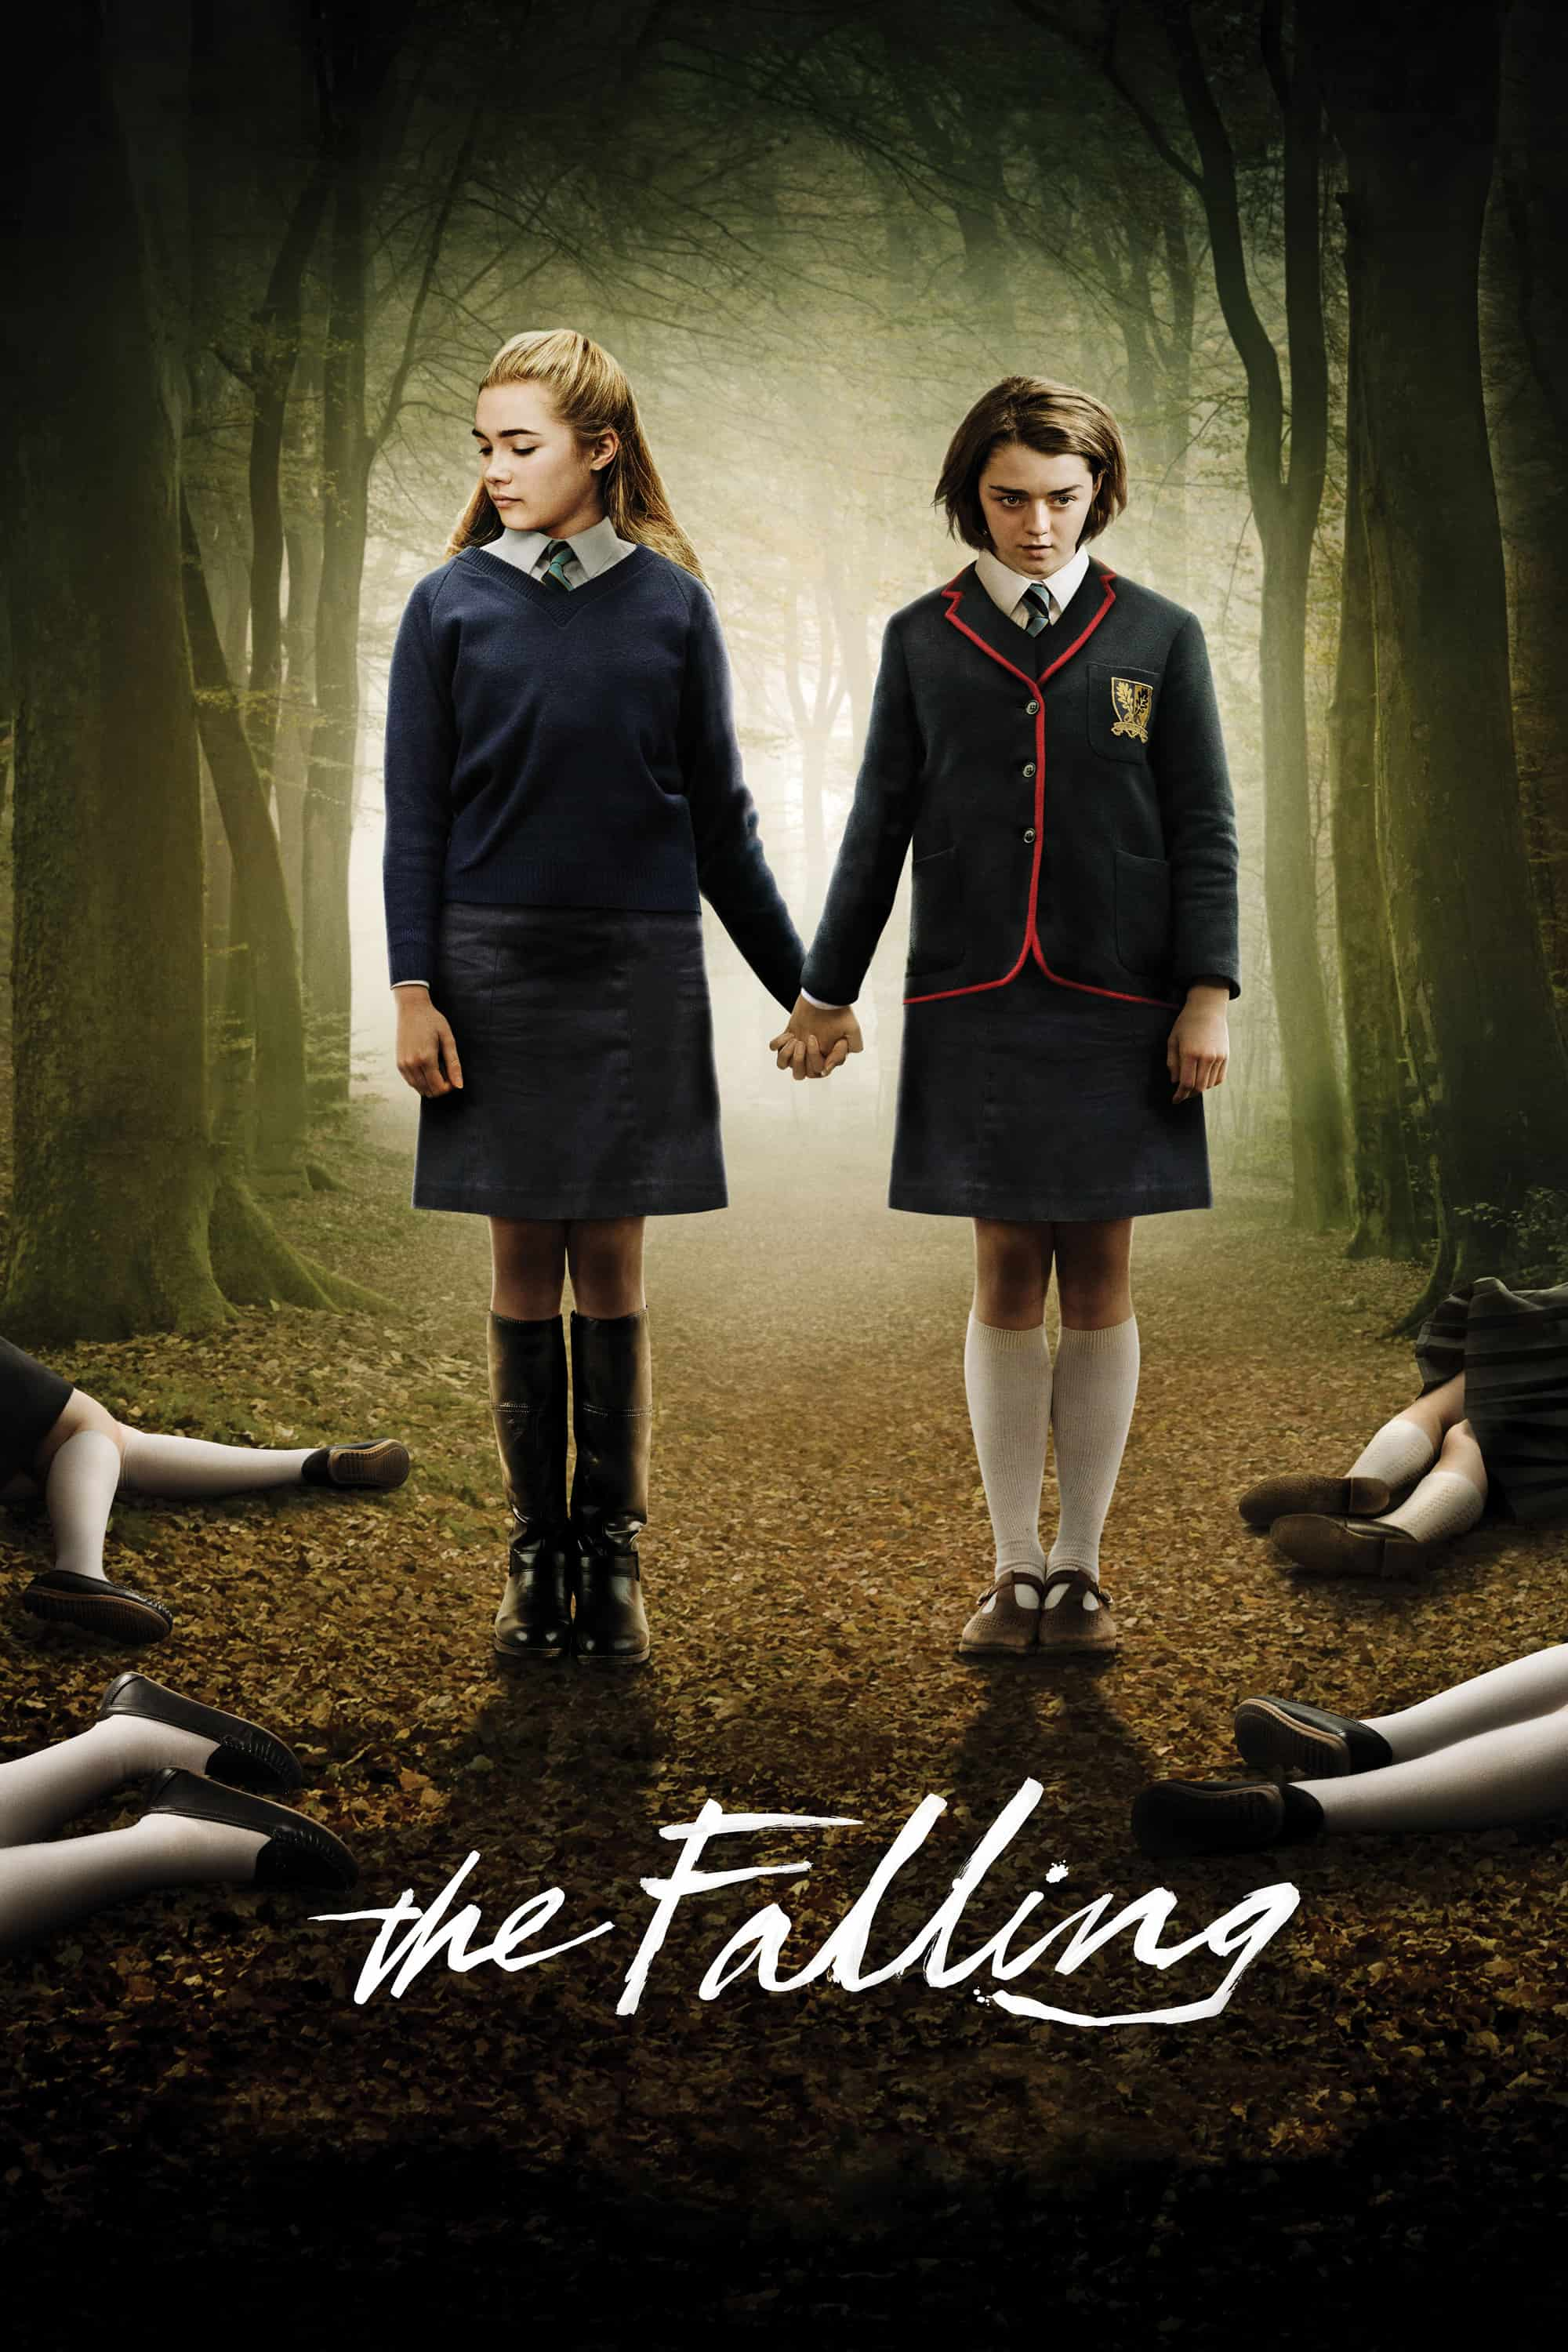 The Falling, 2014